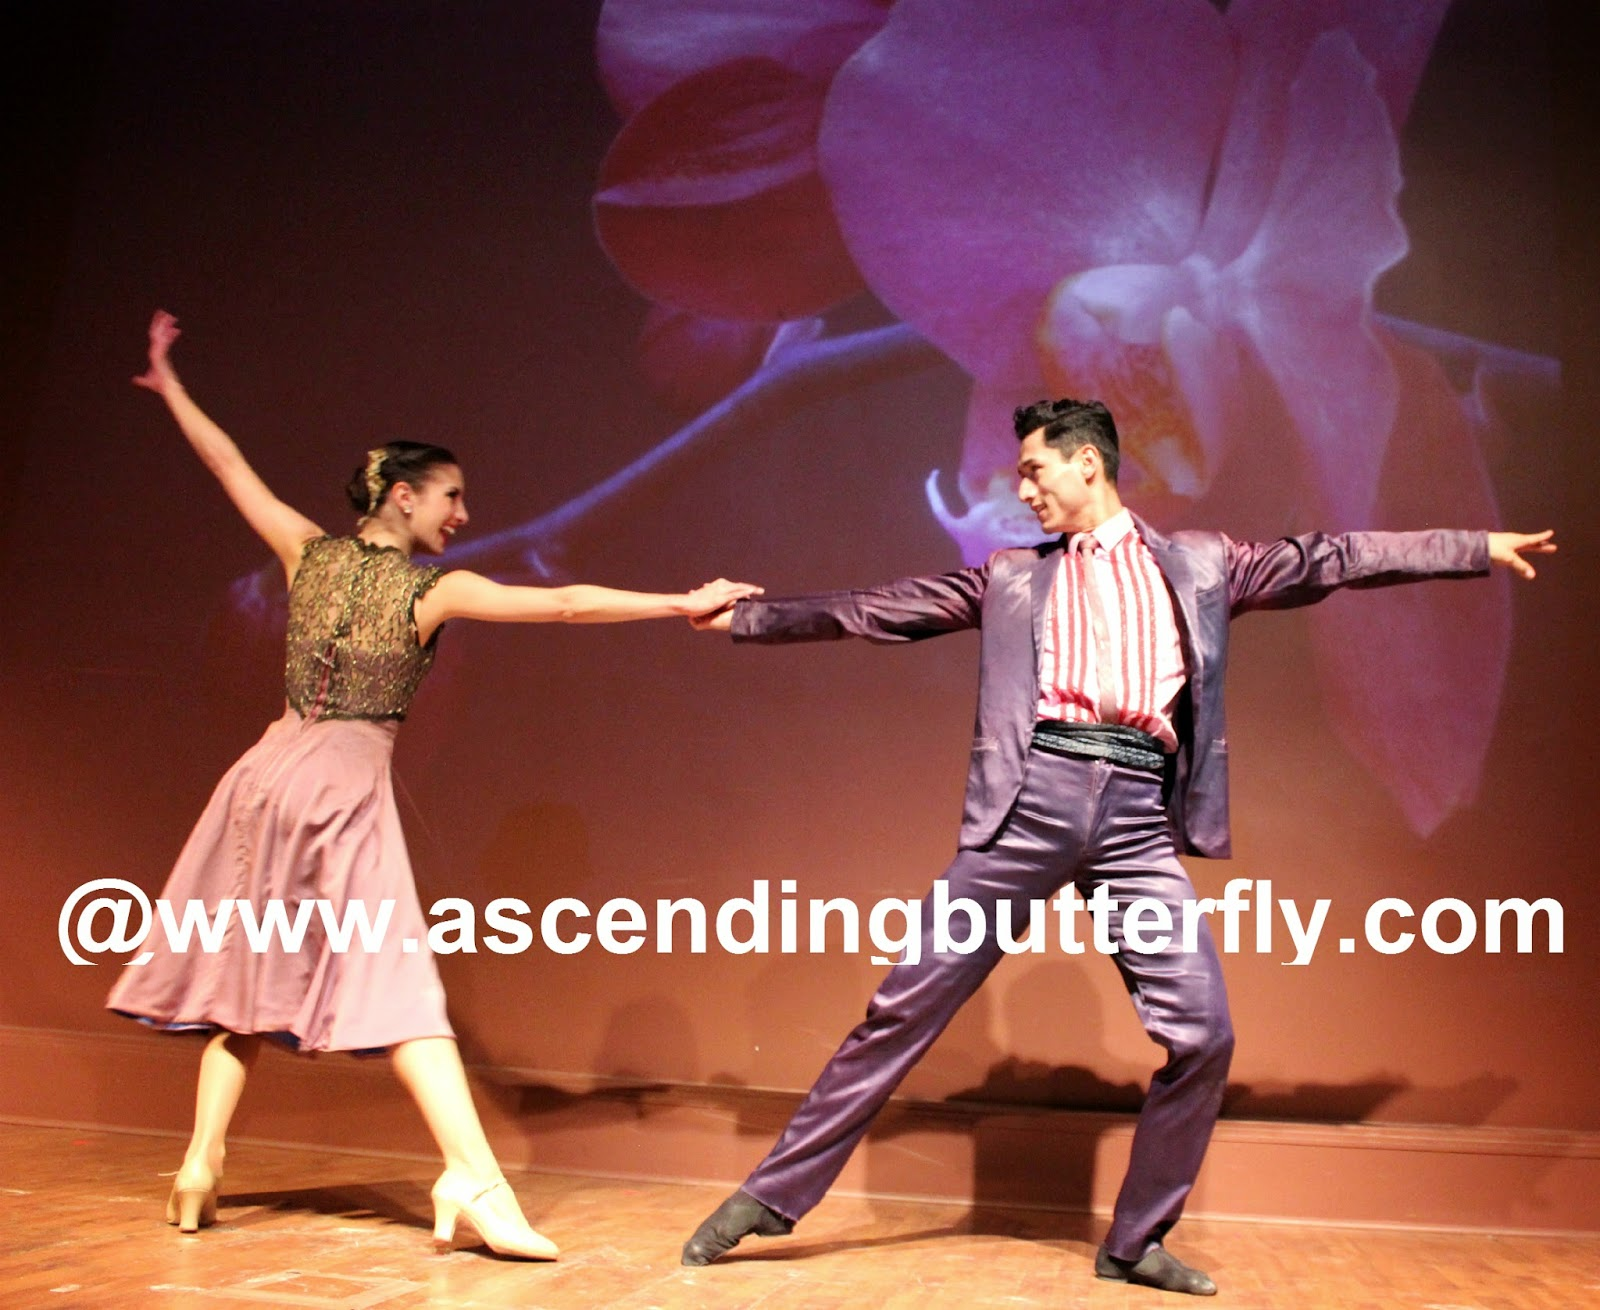 Ballet Hispanico BHdos, Dancer, Nicolay Espitia, and his dance partner are a powerful presence onstage during the scene in a number entitled: Club Havana